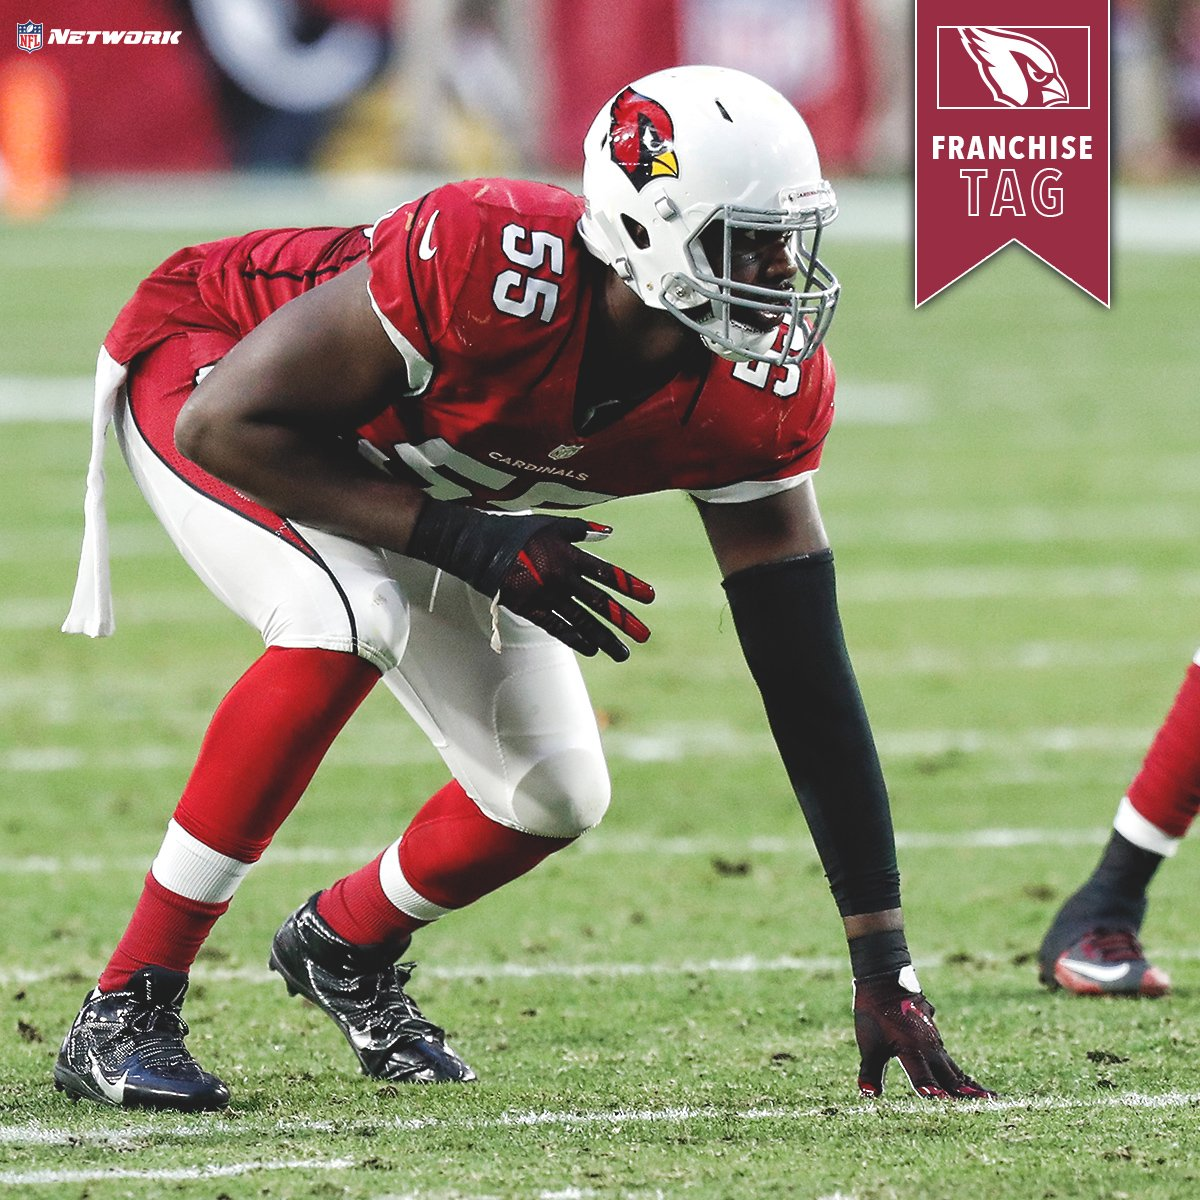 .@AZCardinals announce they have placed the franchise tag on DE Chandl...